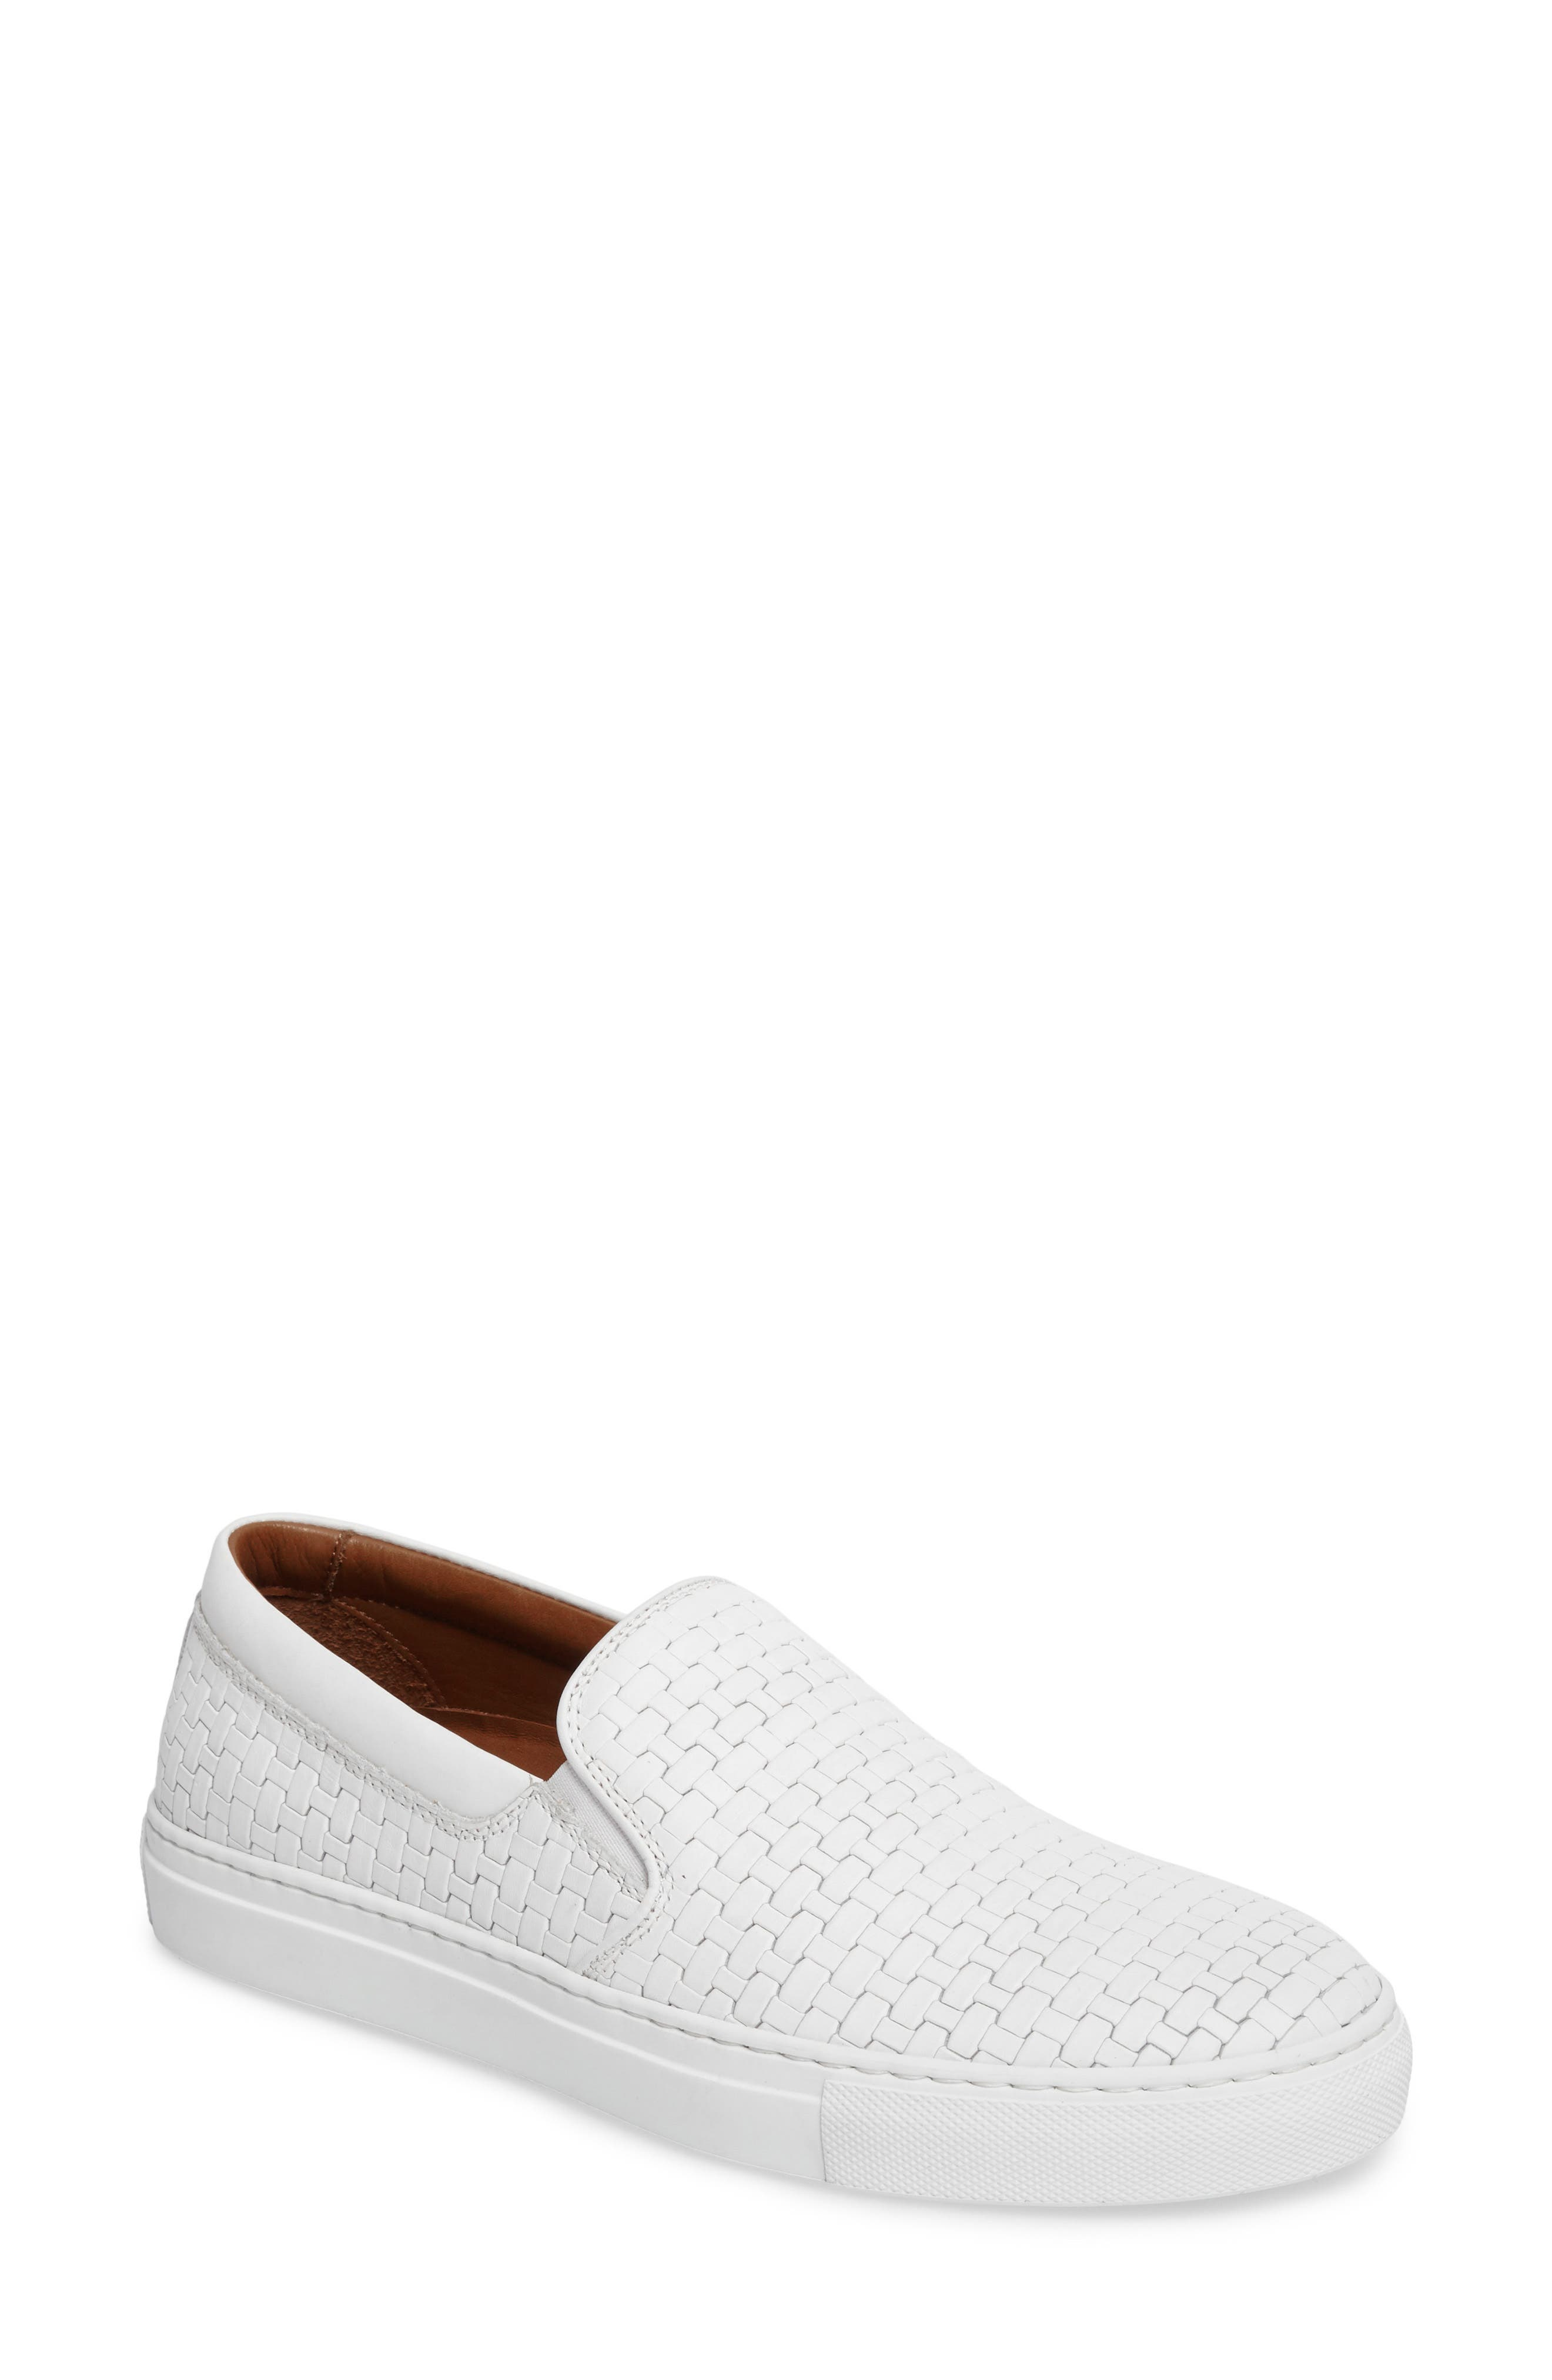 AQUATALIA Ashlynn Embossed Slip-On Sneaker, Main, color, WHITE